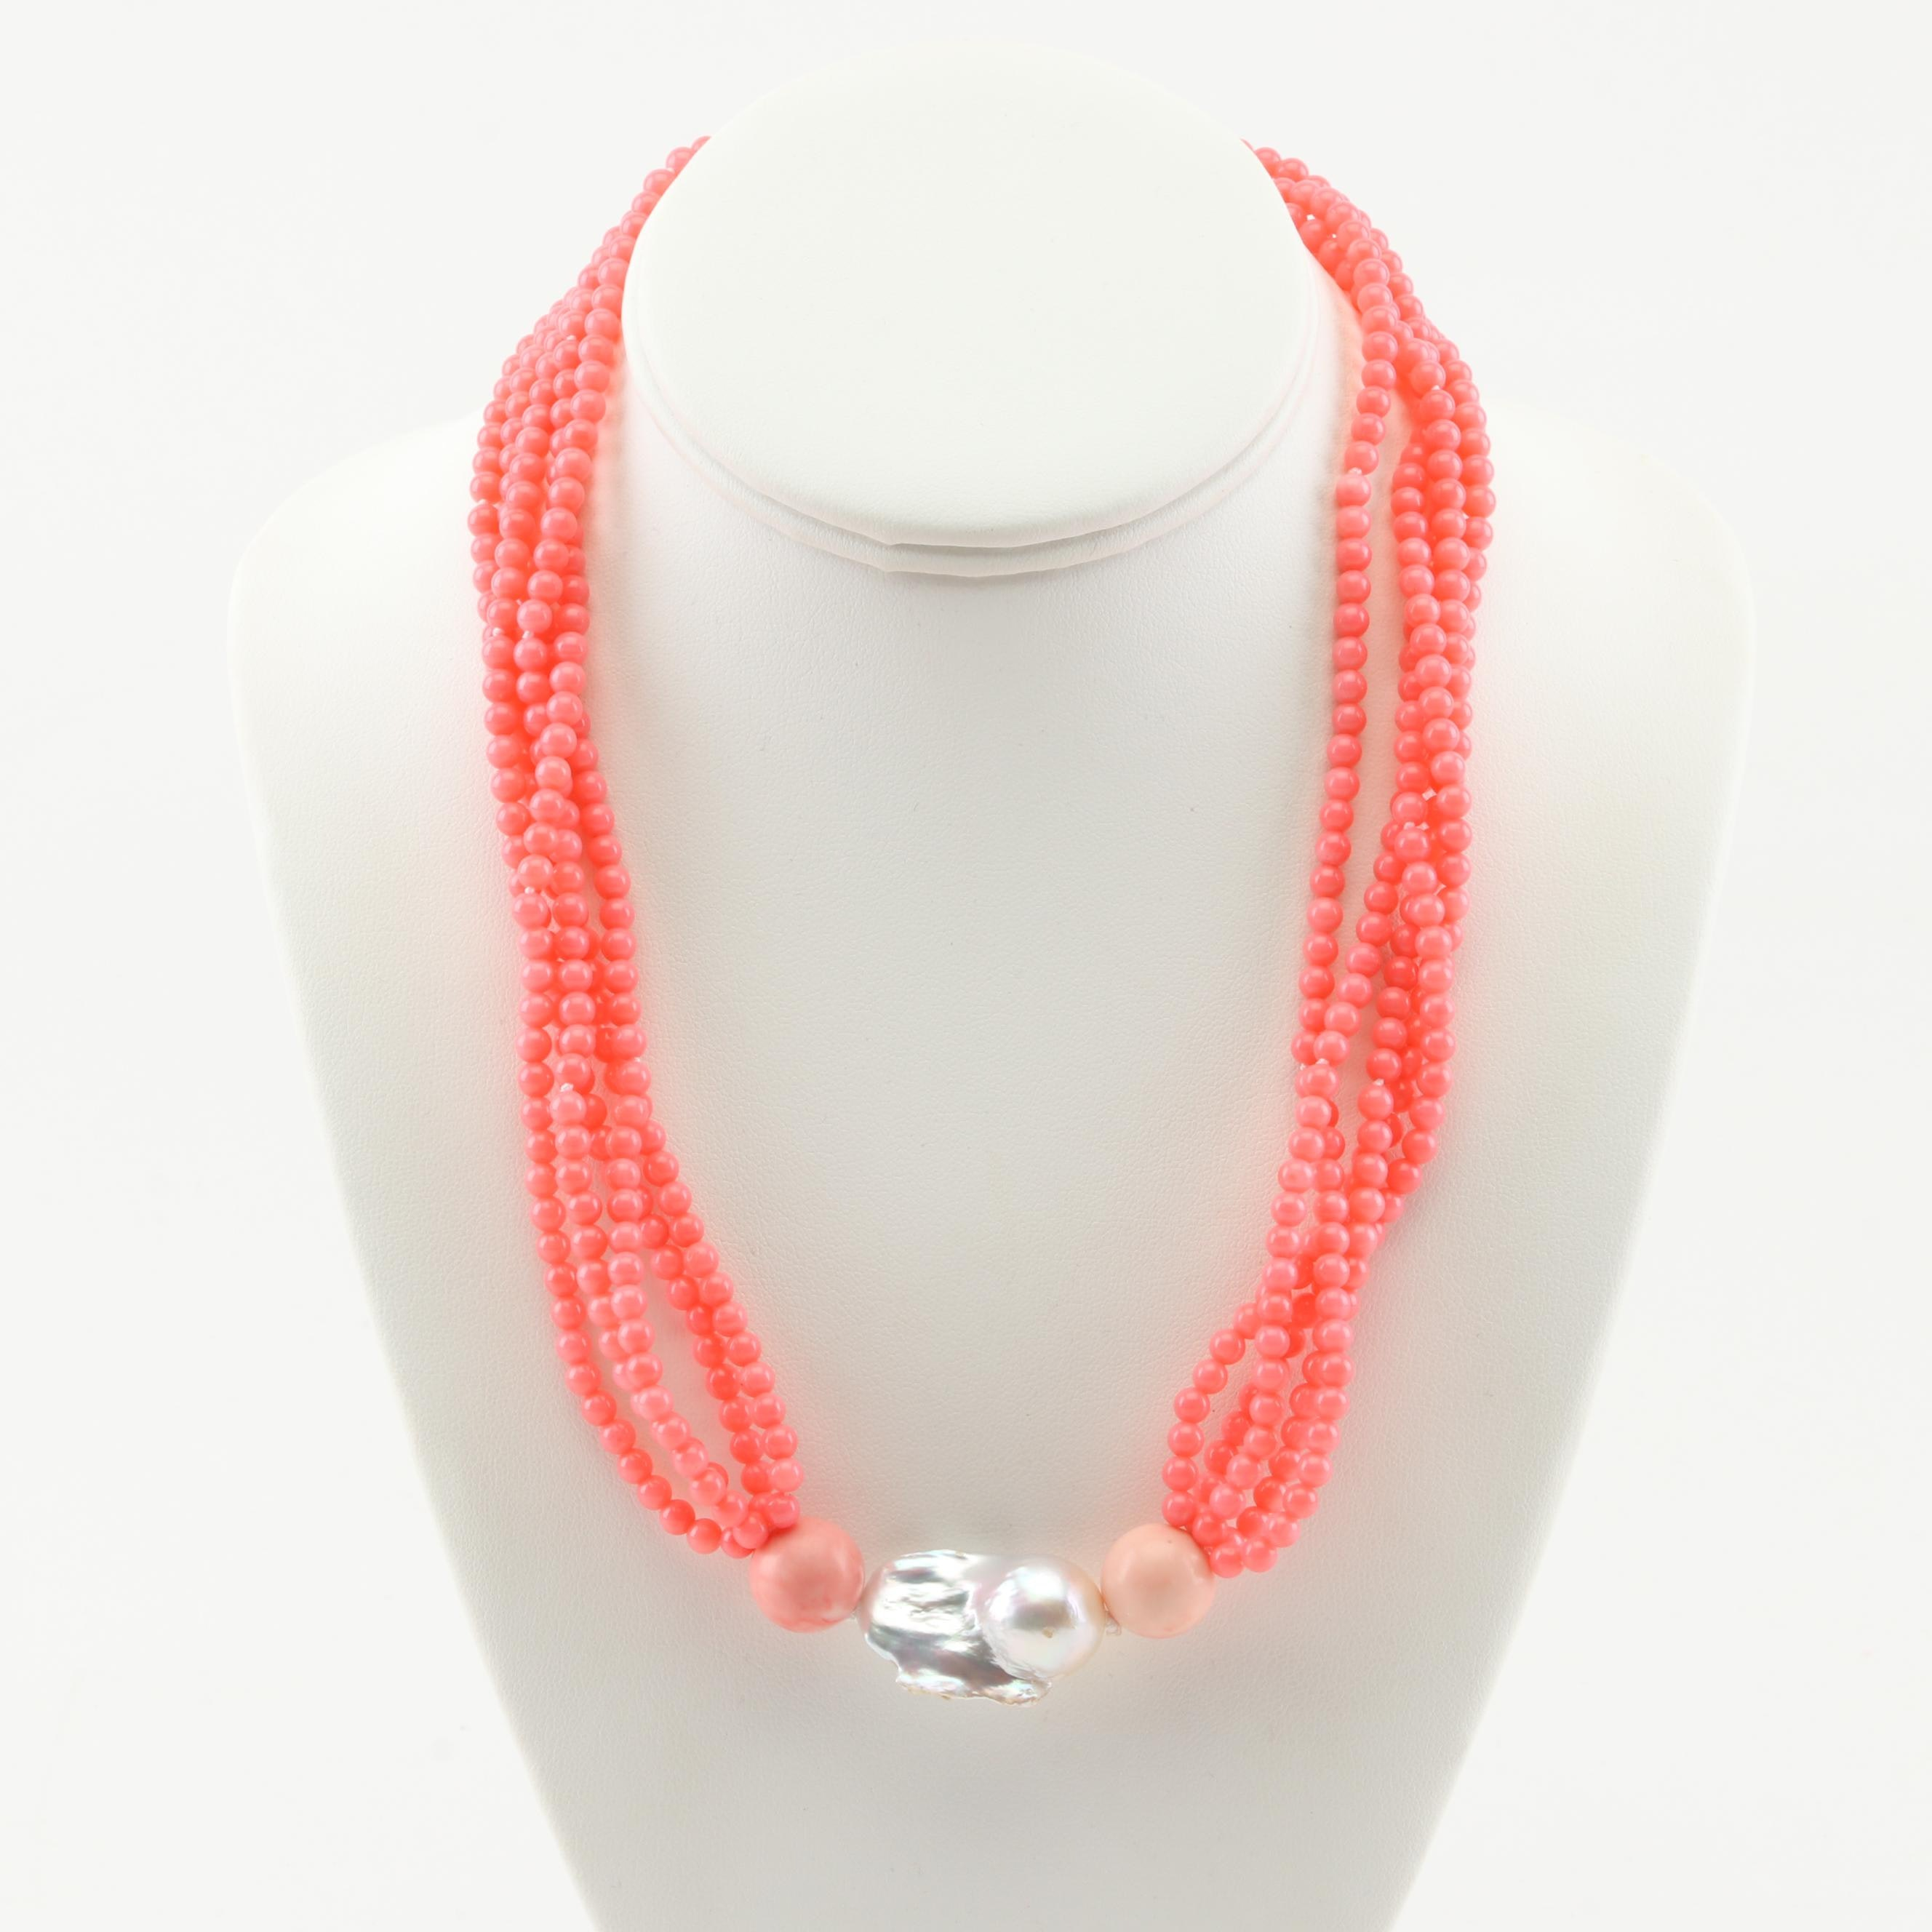 Freshwater Pearl and Coral Necklace